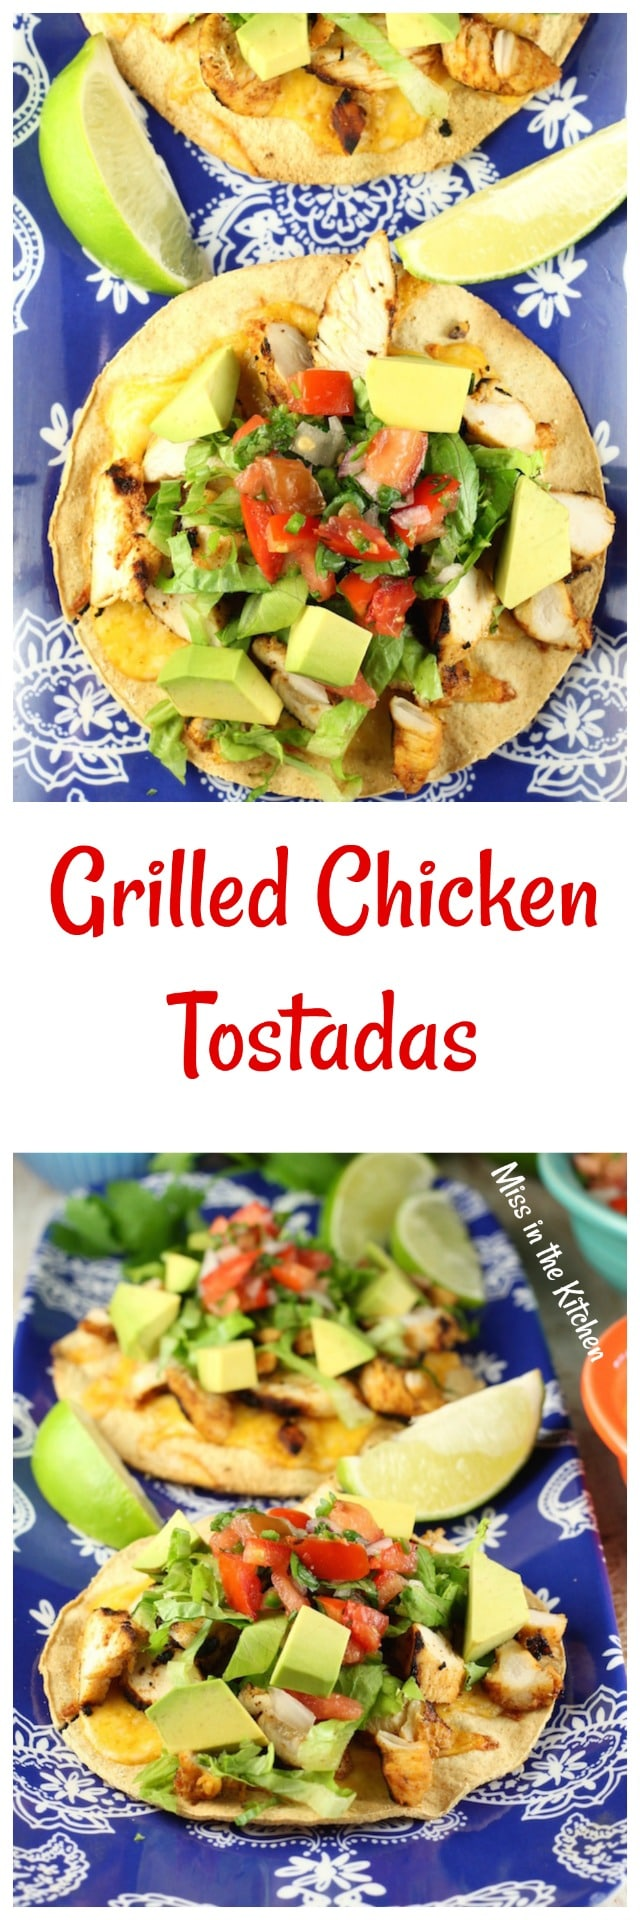 Grilled Chicken Tostadas Recipe from MissintheKitchen.com #sponsored by Produce for Kids